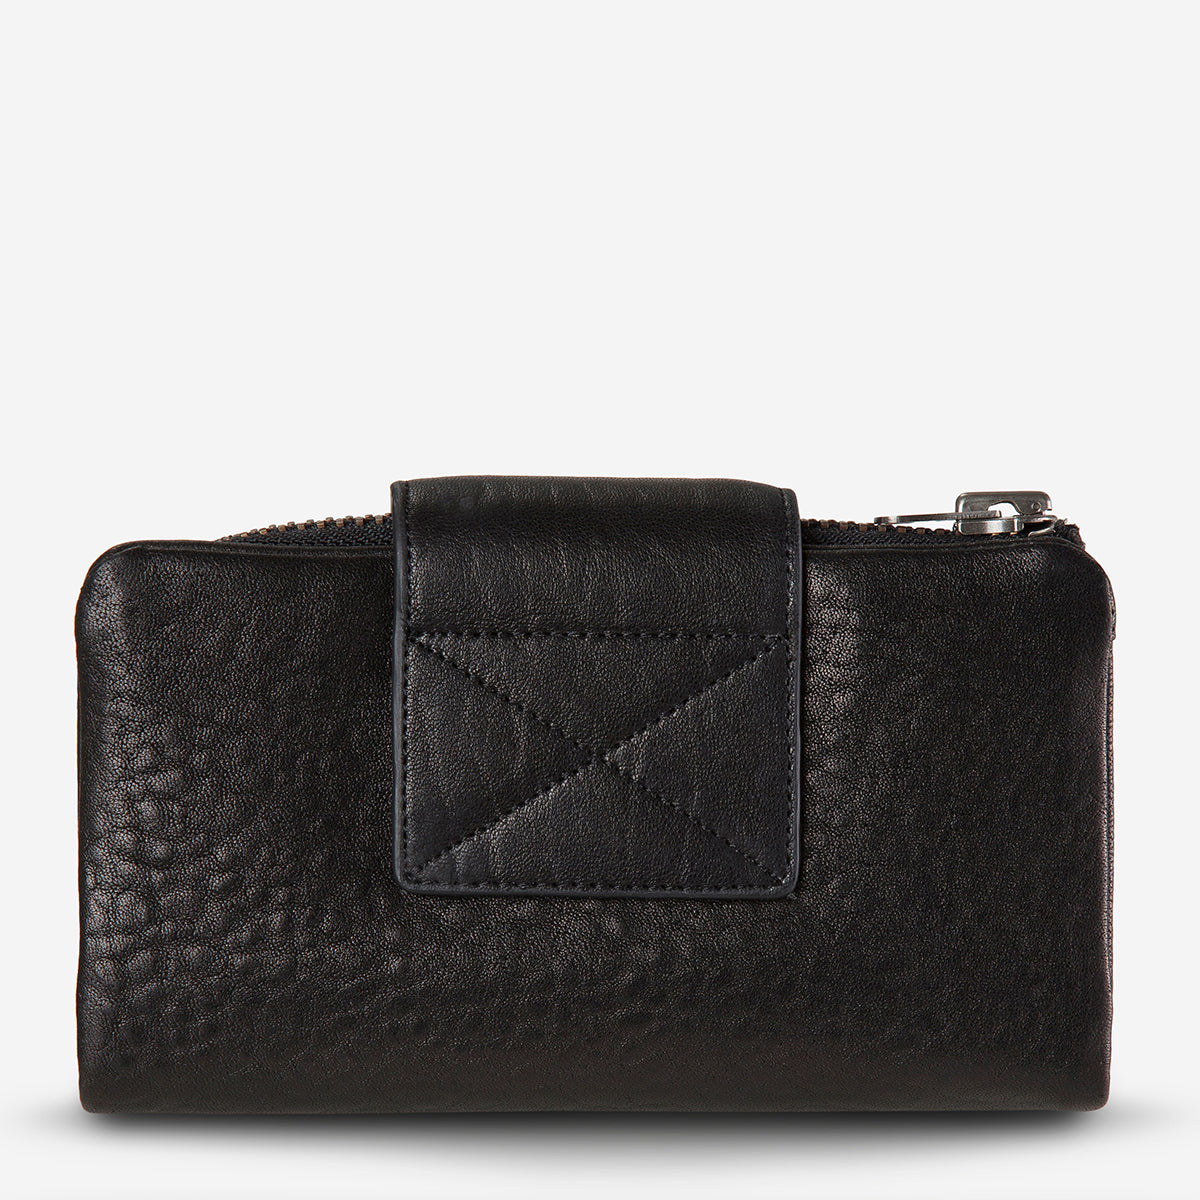 Status Anxiety The Fallen Leather Wallet - Black